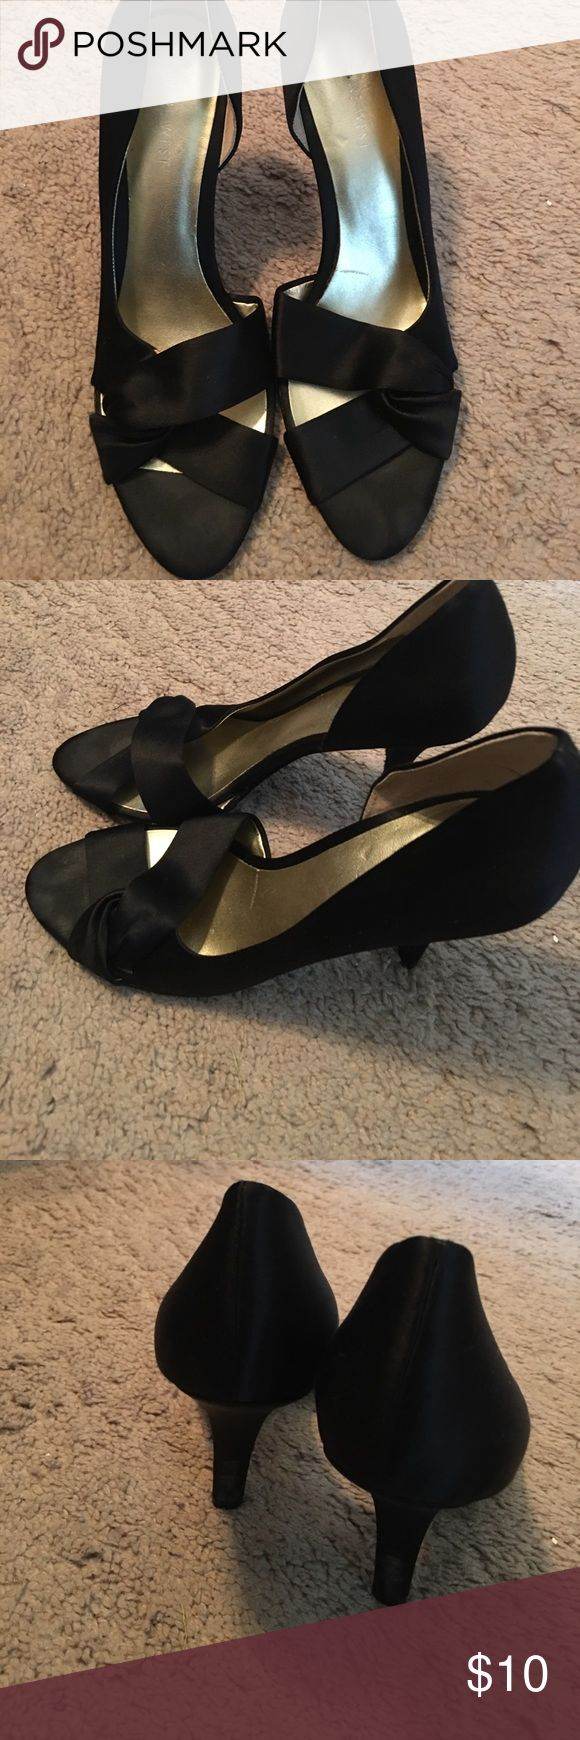 Nine West heels size 9 Nine West heels size 9 Nine West Shoes Heels